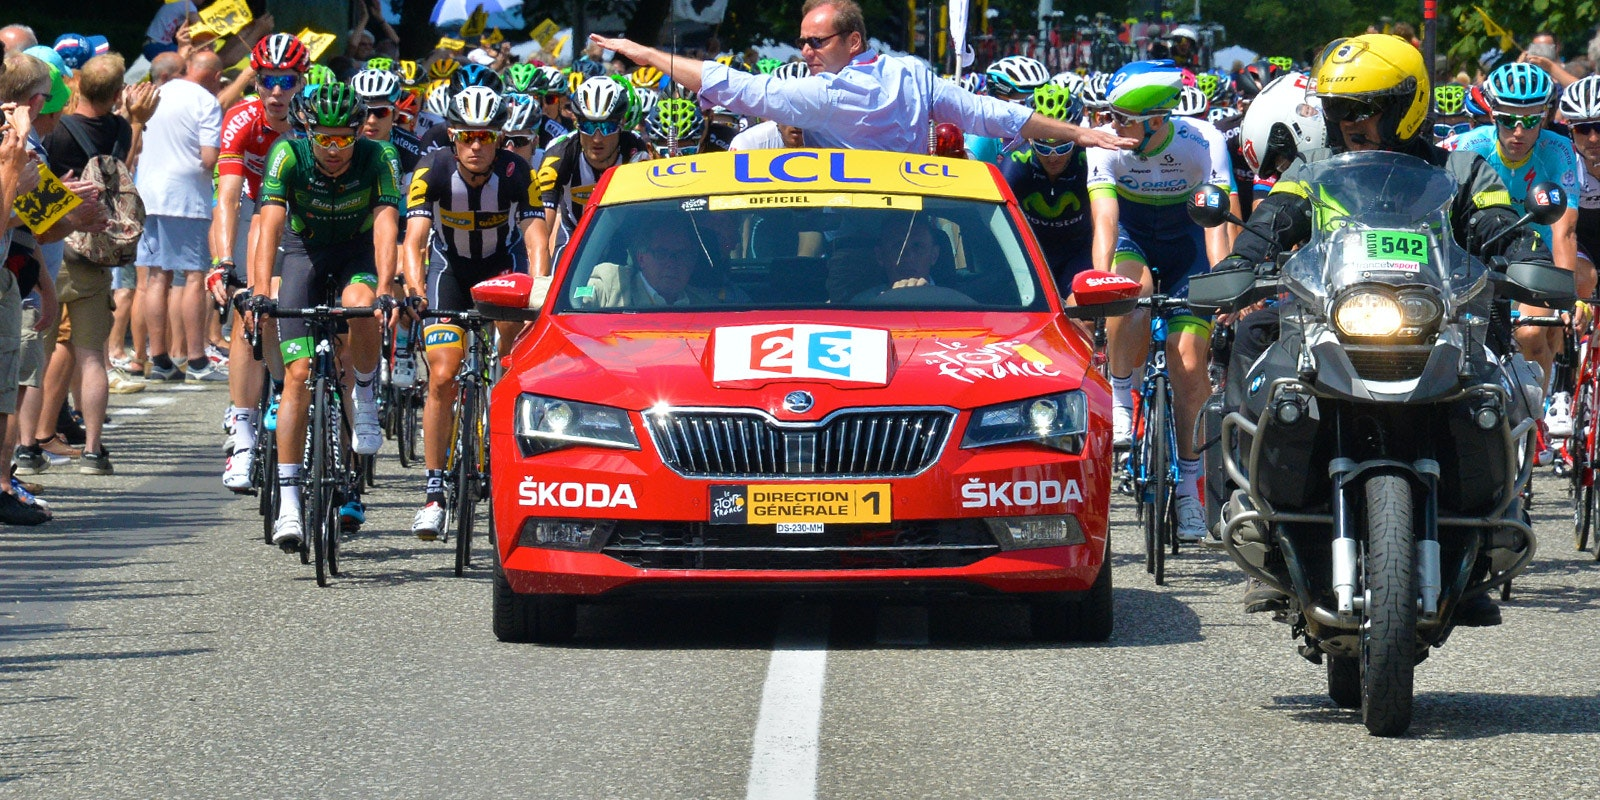 Skoda superb cyclists.jpg?ixlib=rb 1.1